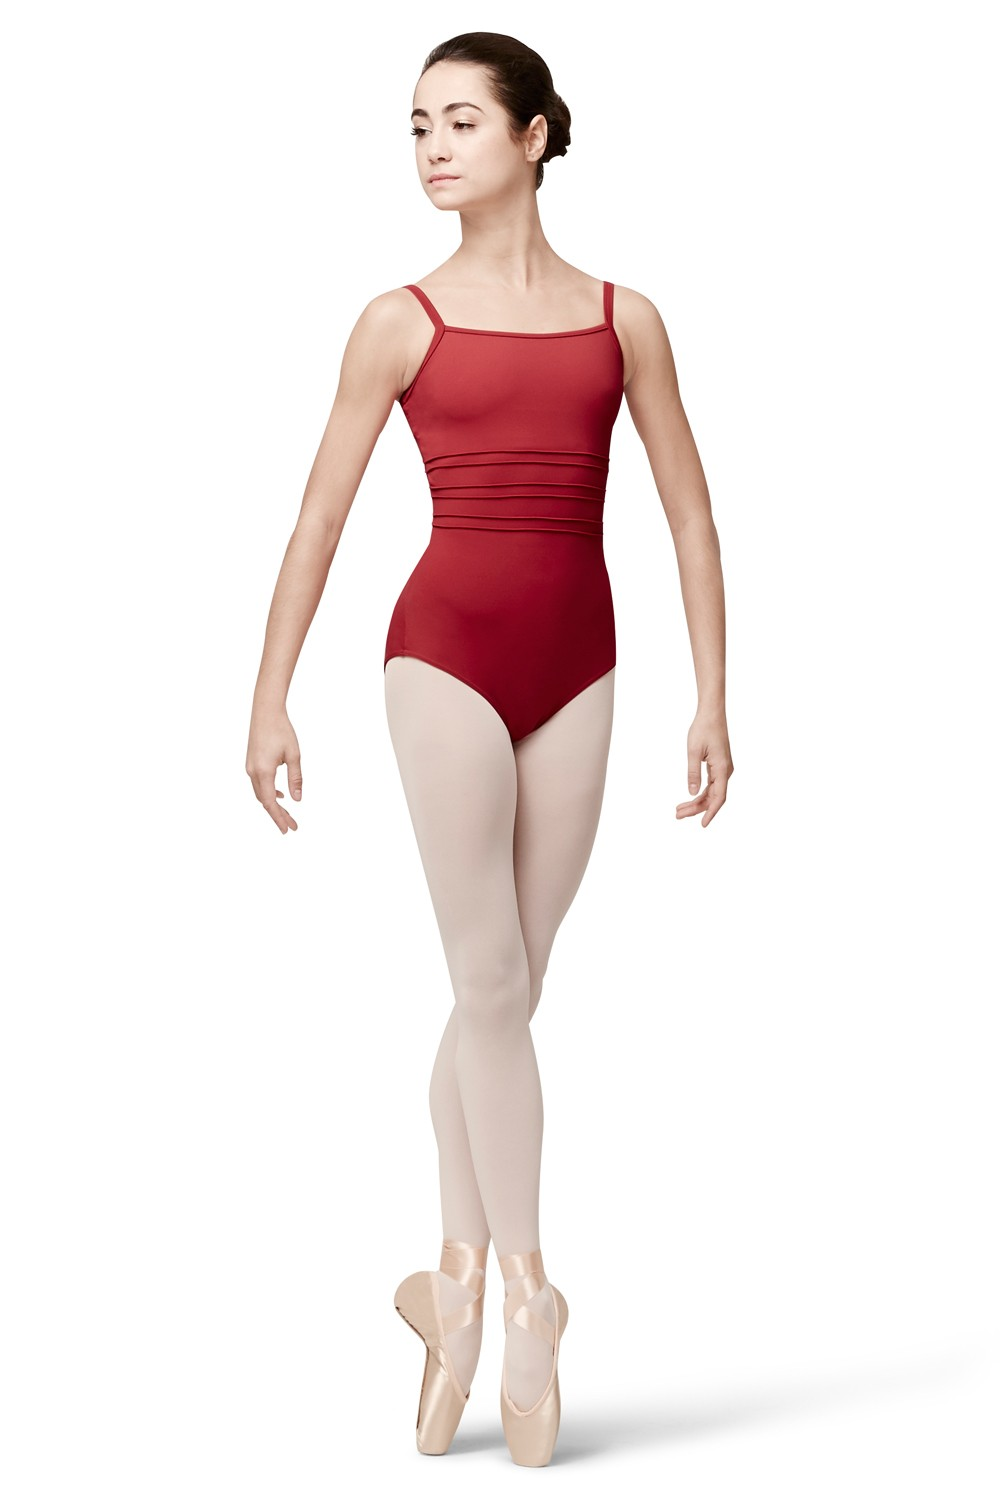 Proserpine Women's Dance Leotards